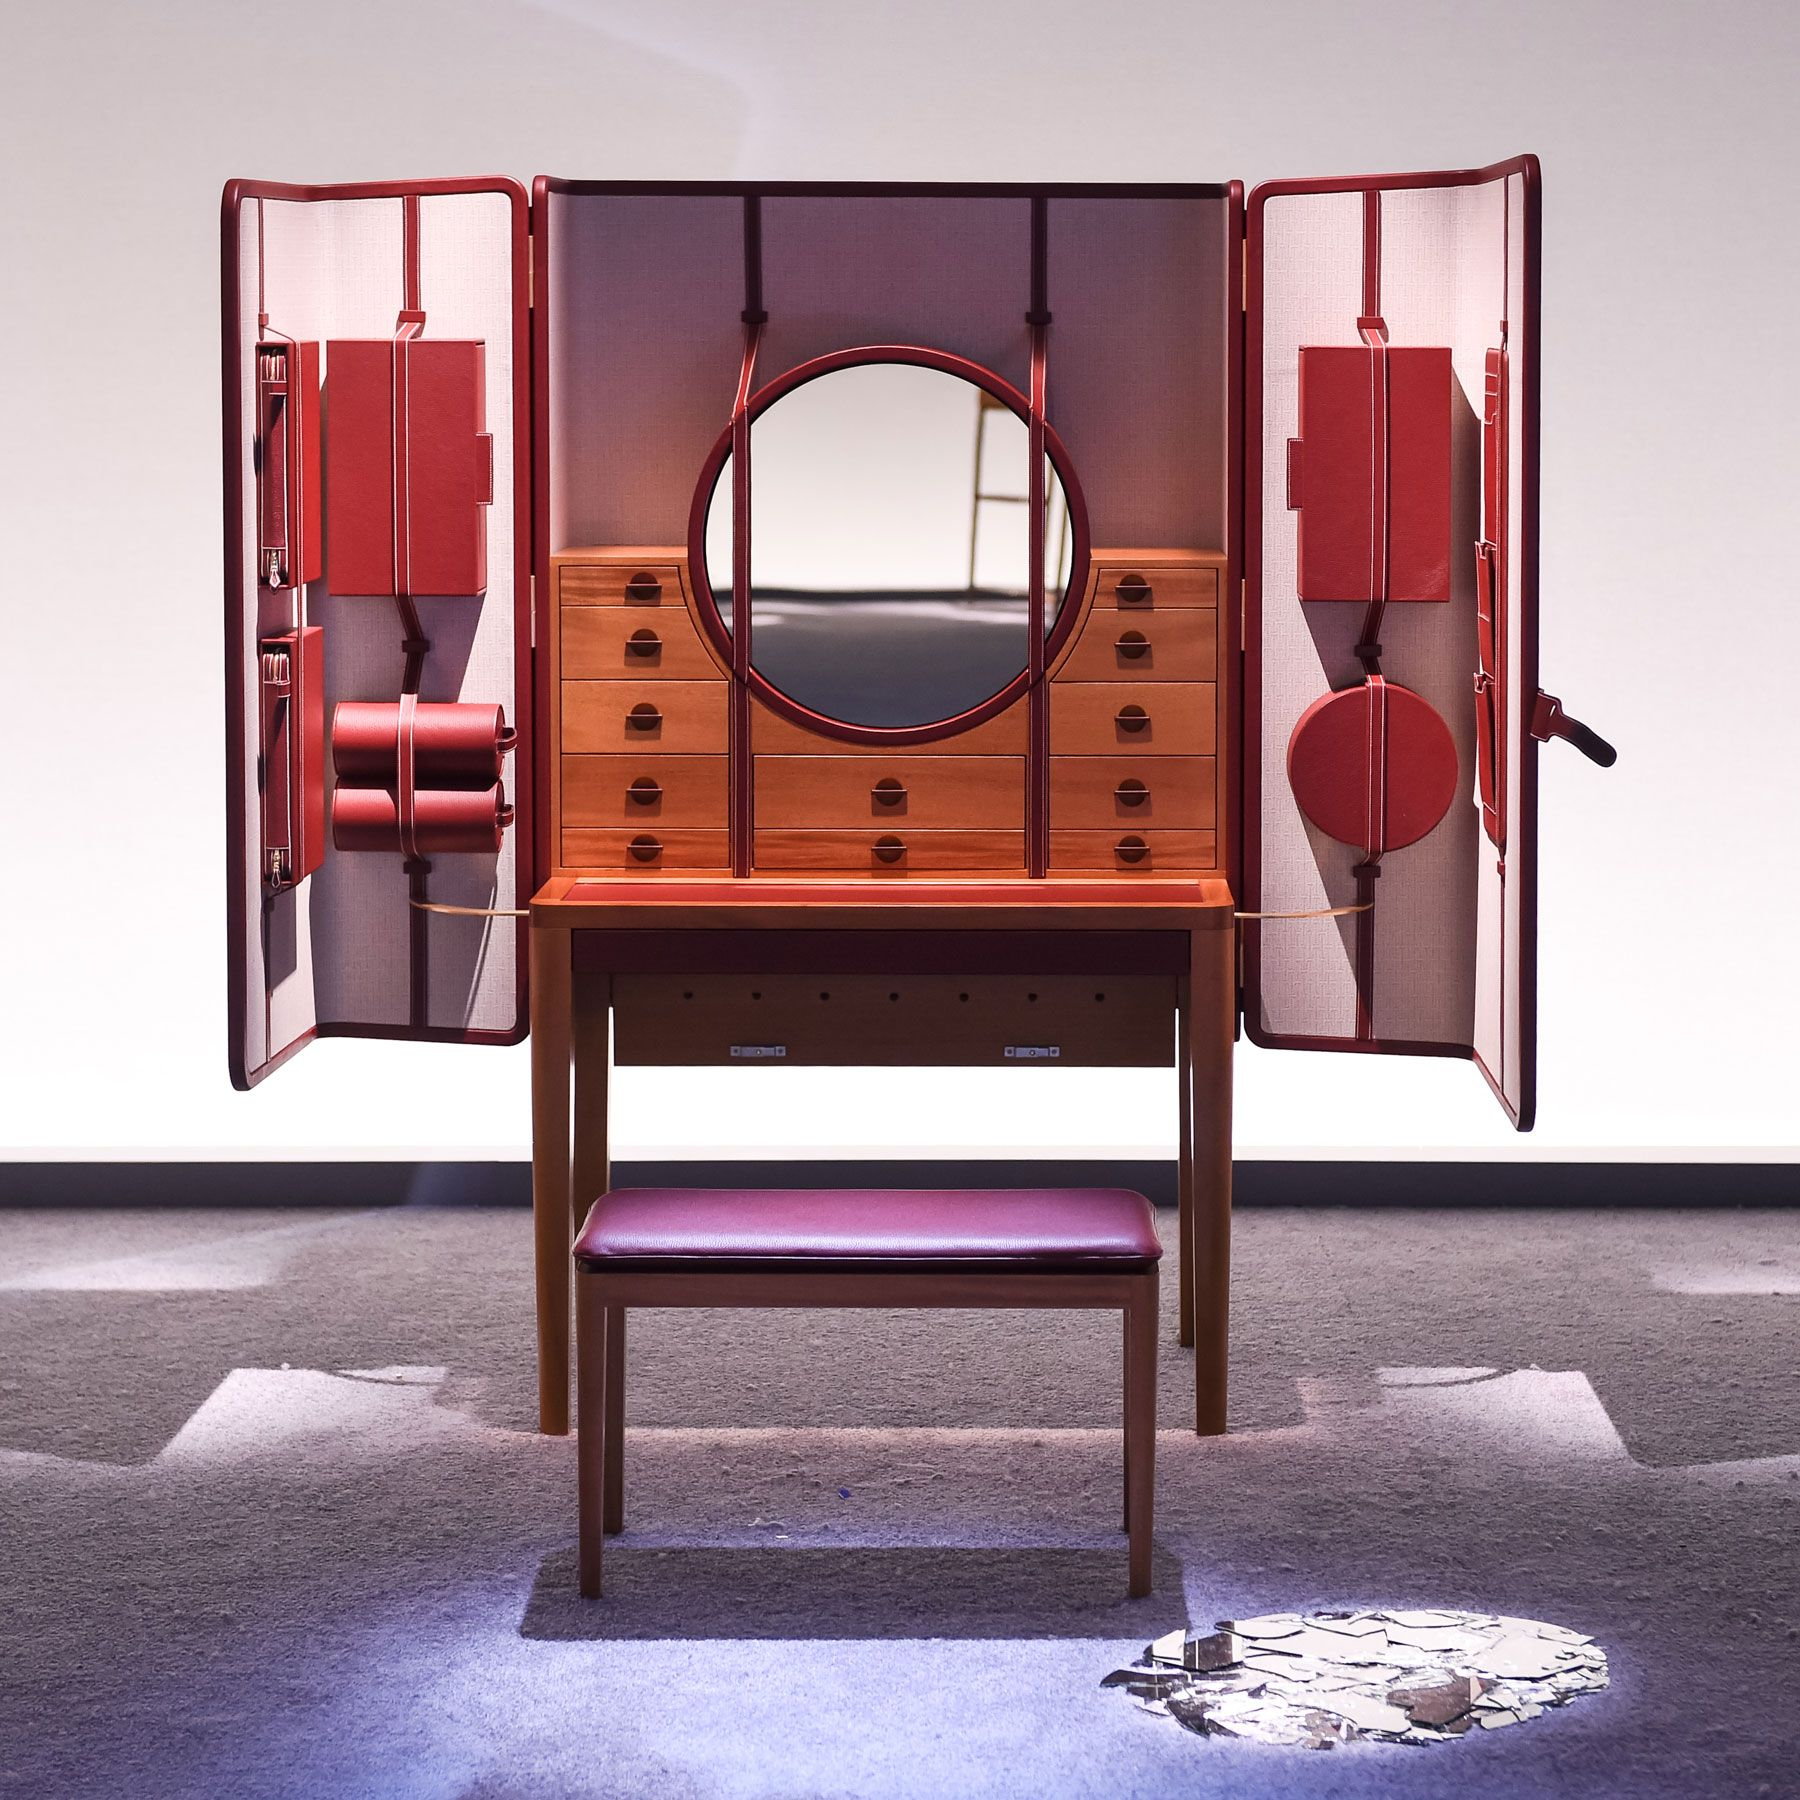 hermes-presents-here-elsewhere-installation-5